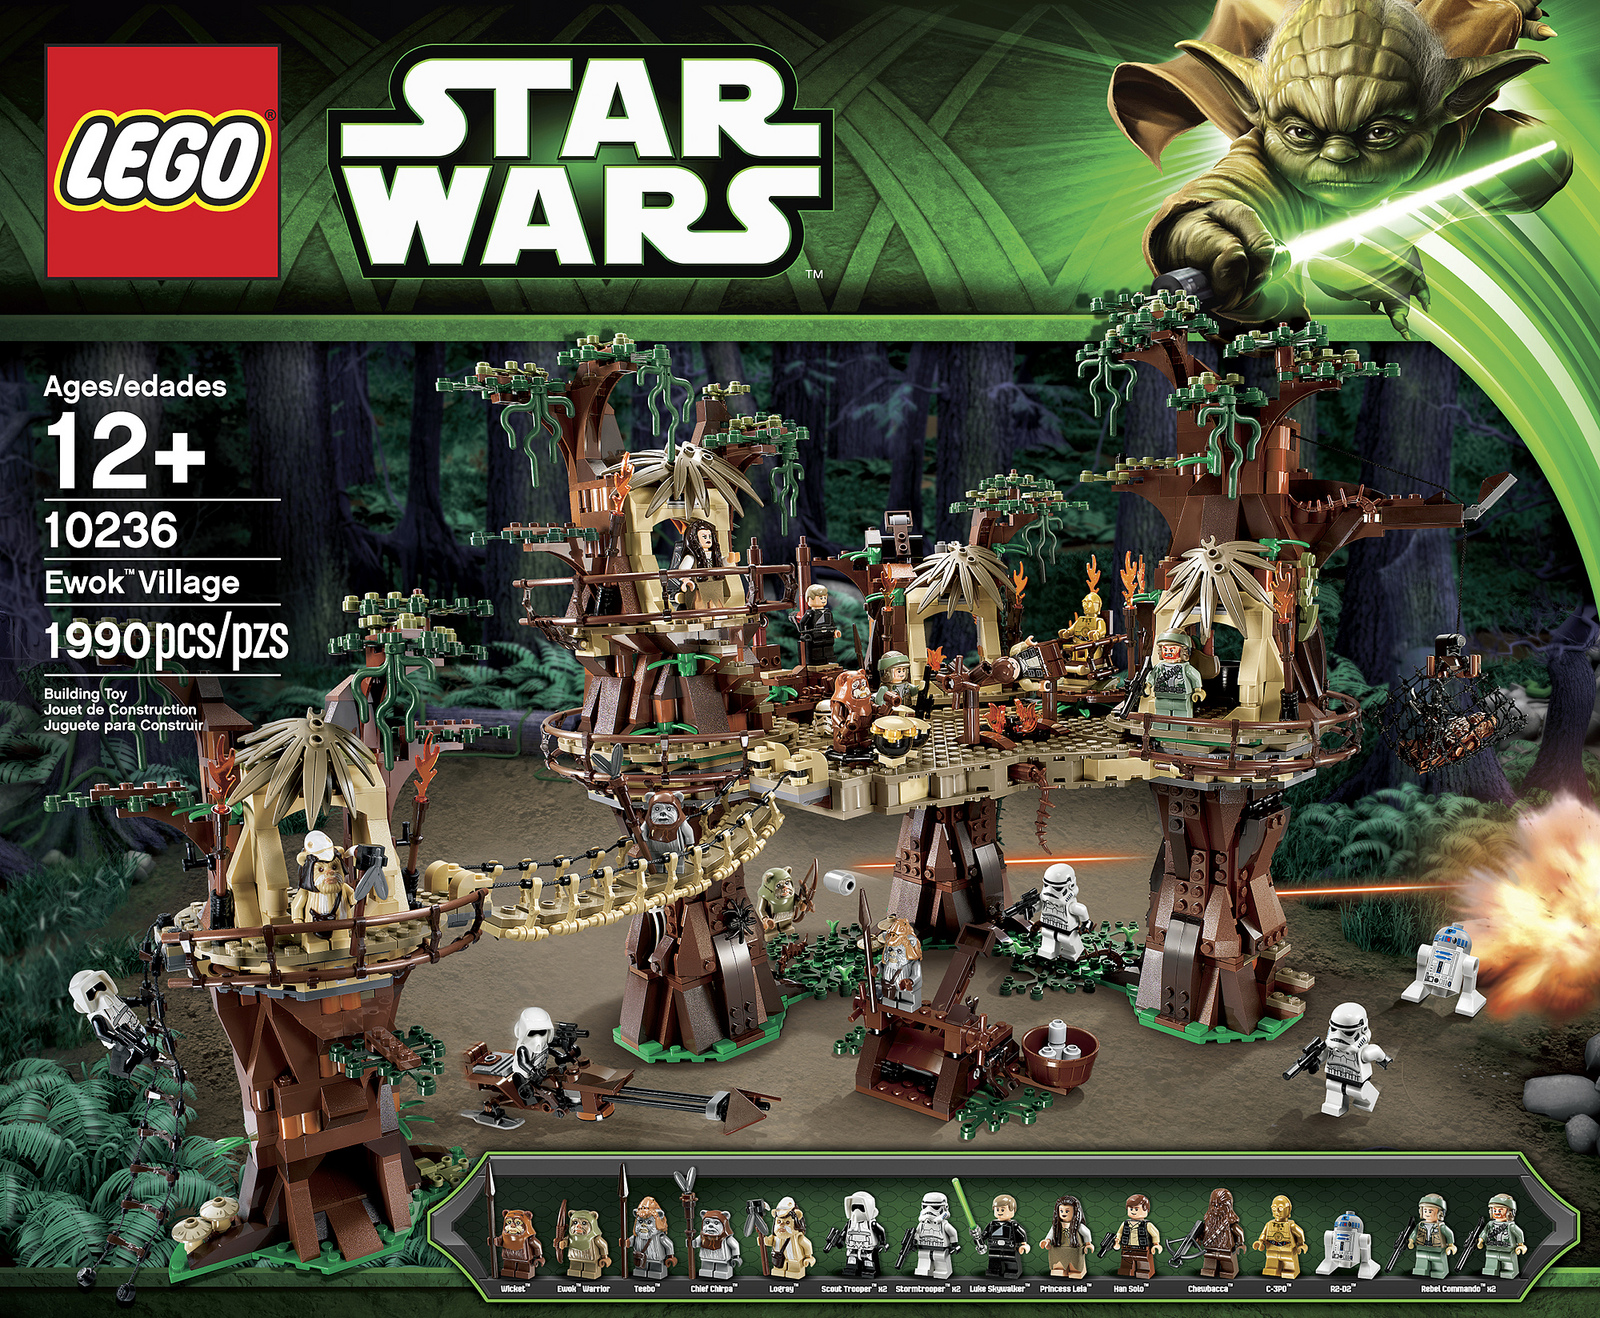 LEGO Star Wars Ewok Village 10236 Fully Revealed w/ Video & Photos!